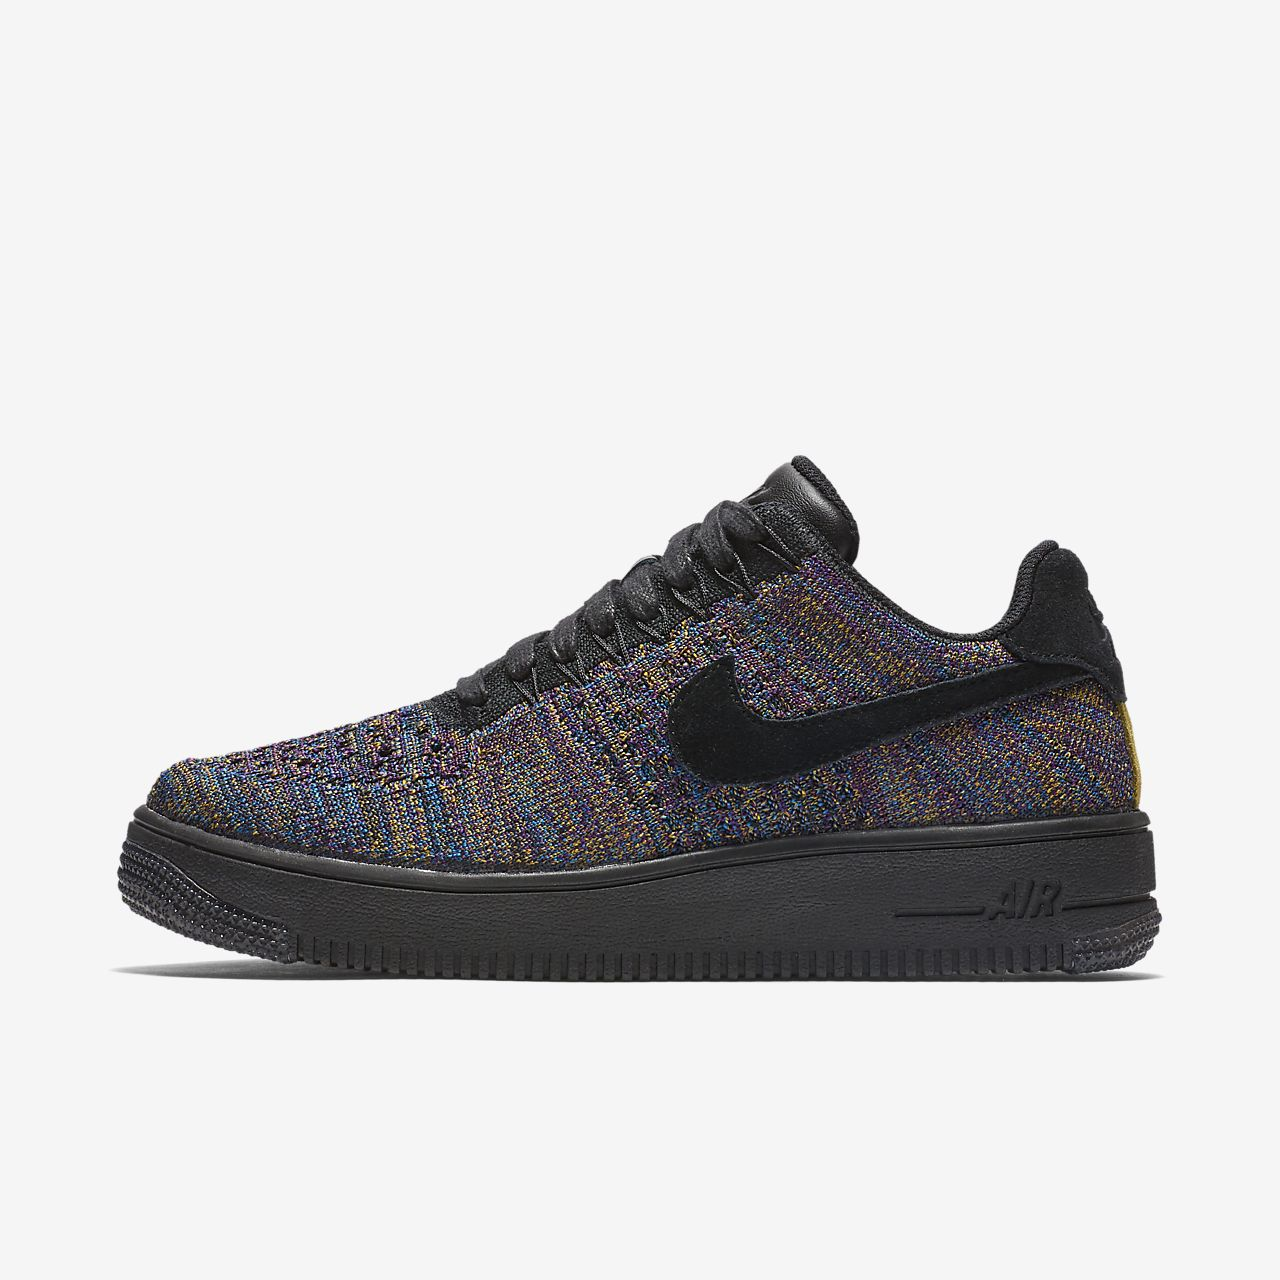 nike air force black flyknit. Black Bedroom Furniture Sets. Home Design Ideas